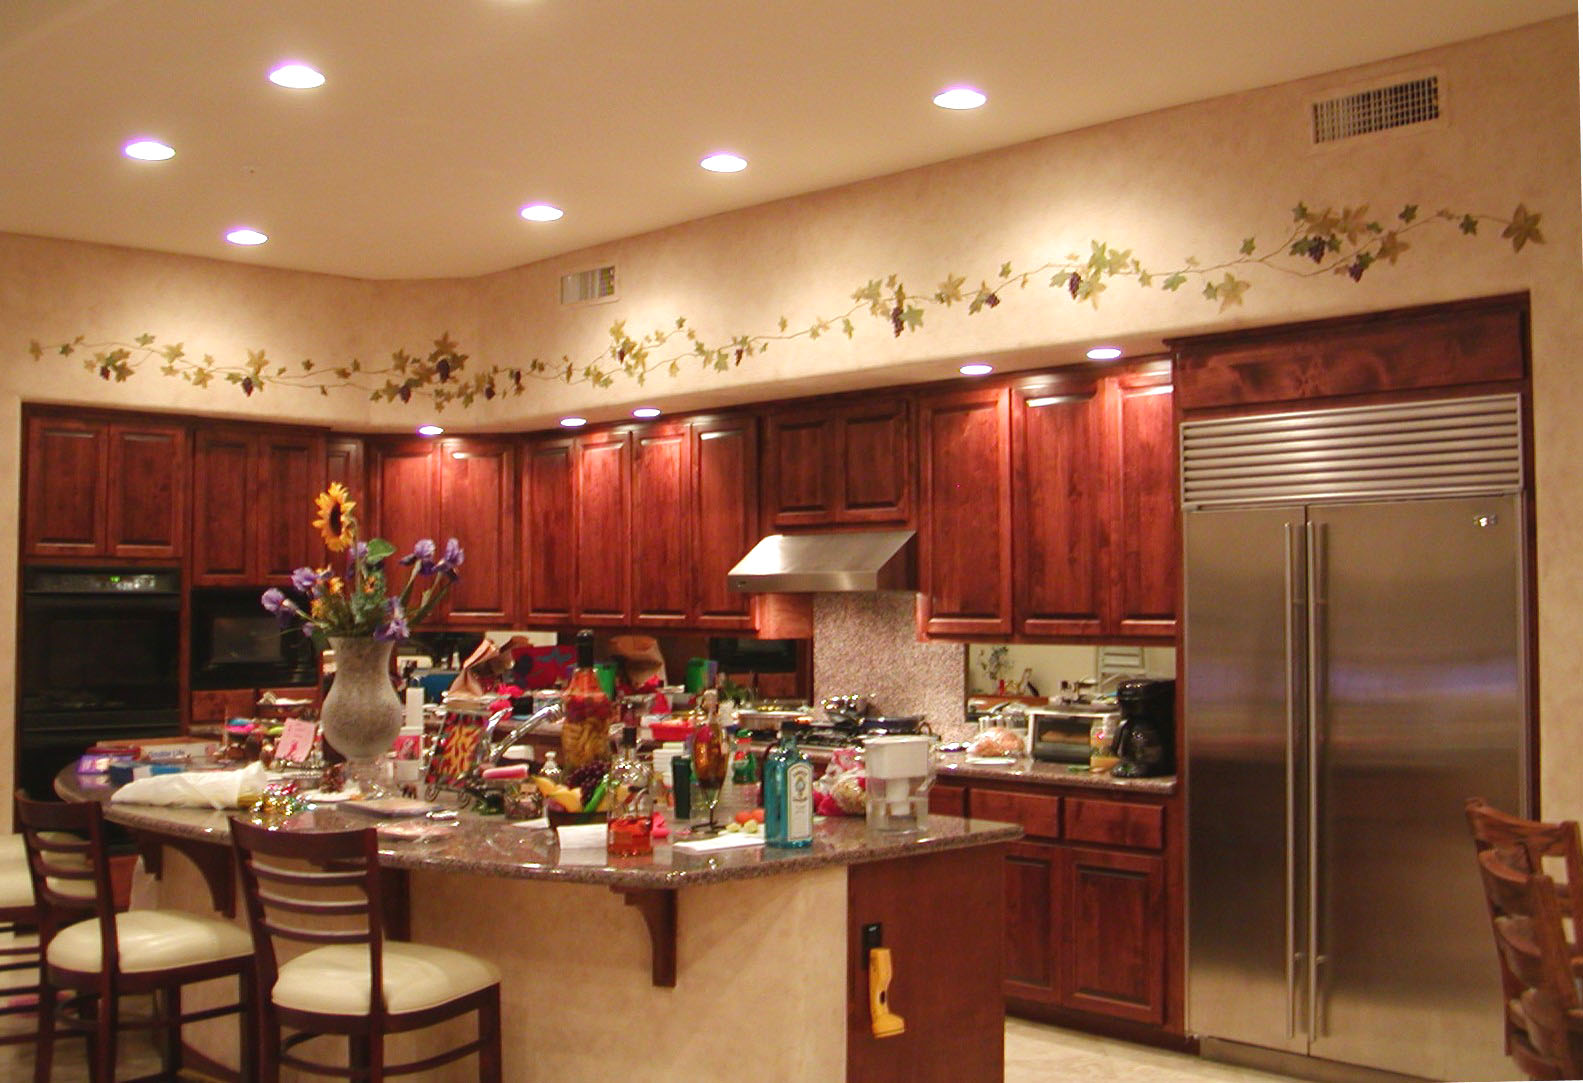 How to Improve Your Kitchen Without Remodeling